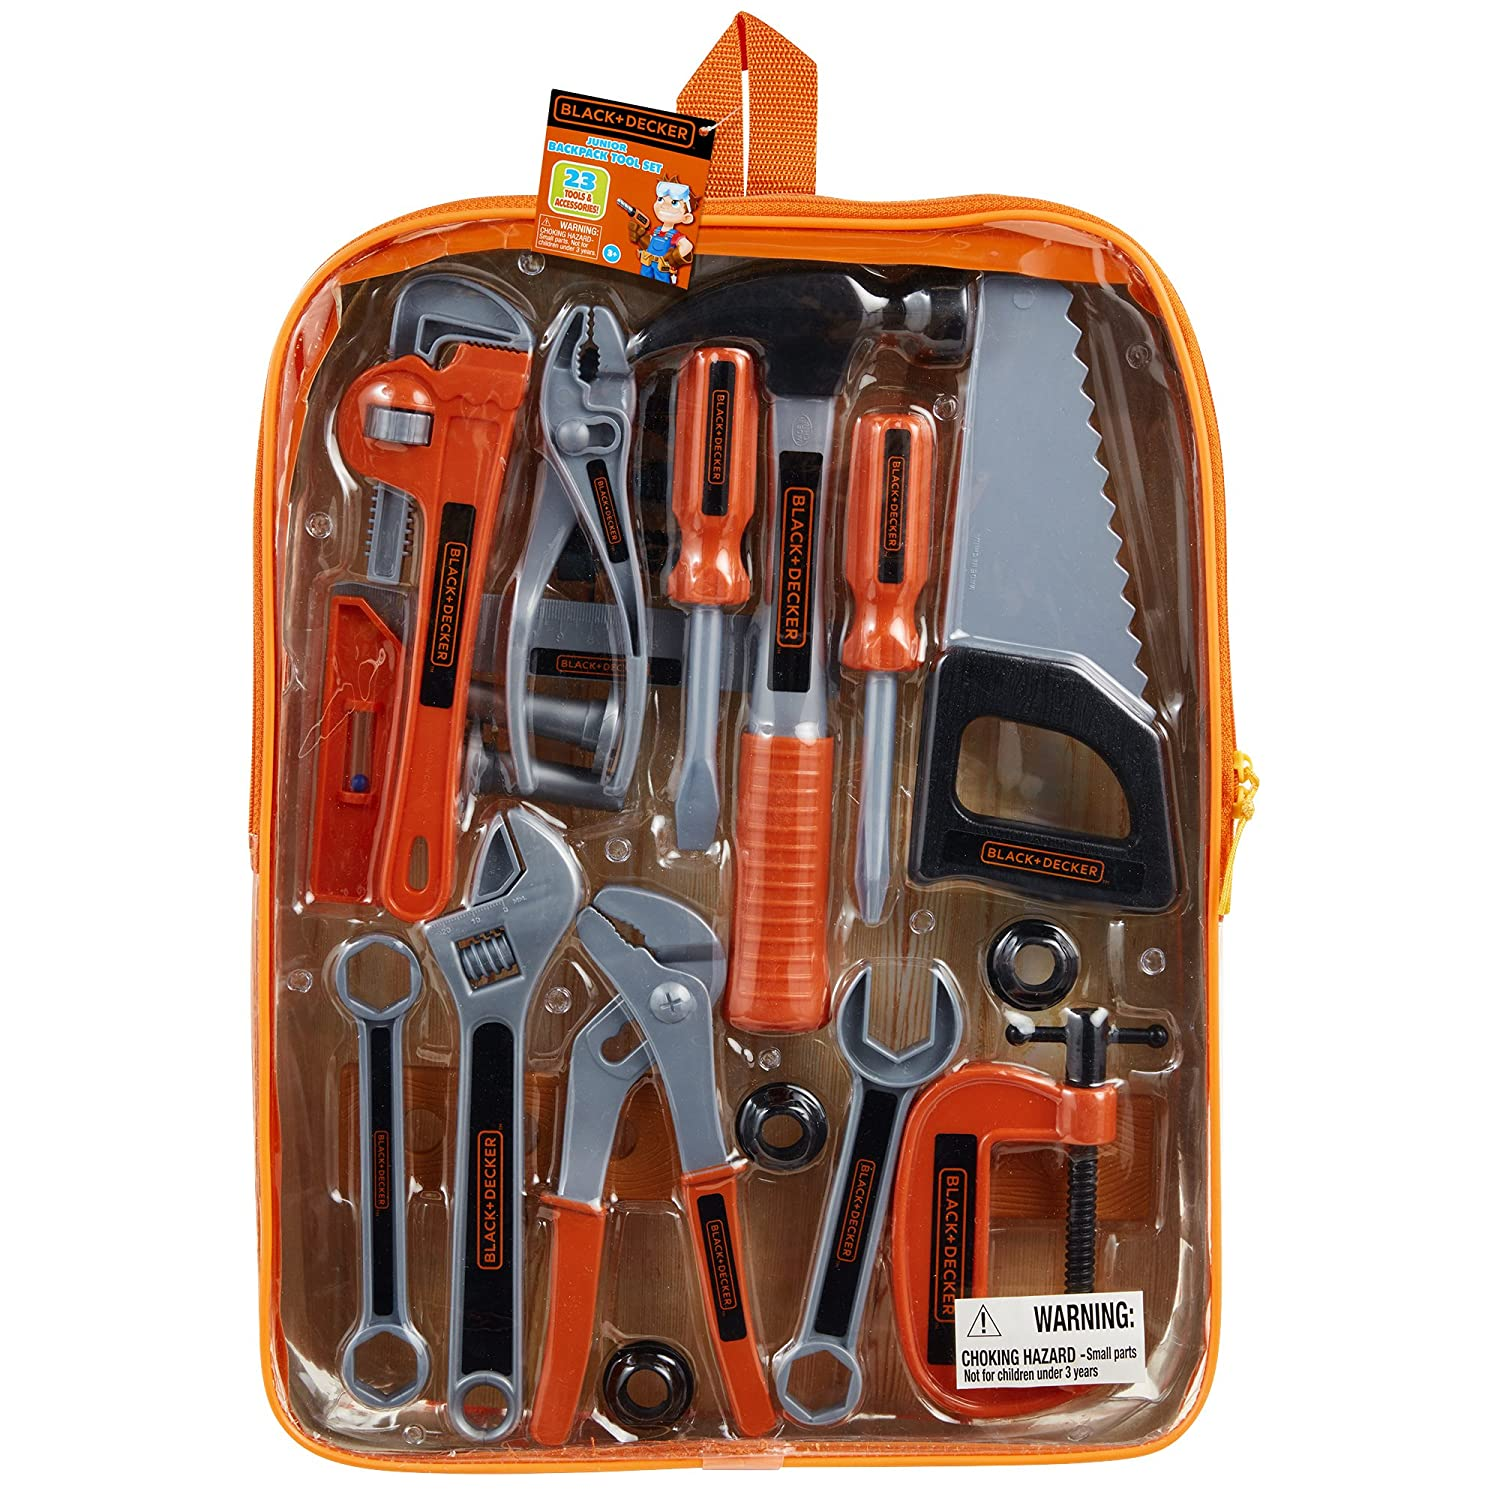 Black & Decker Jr. 23 Piece Backpack Set